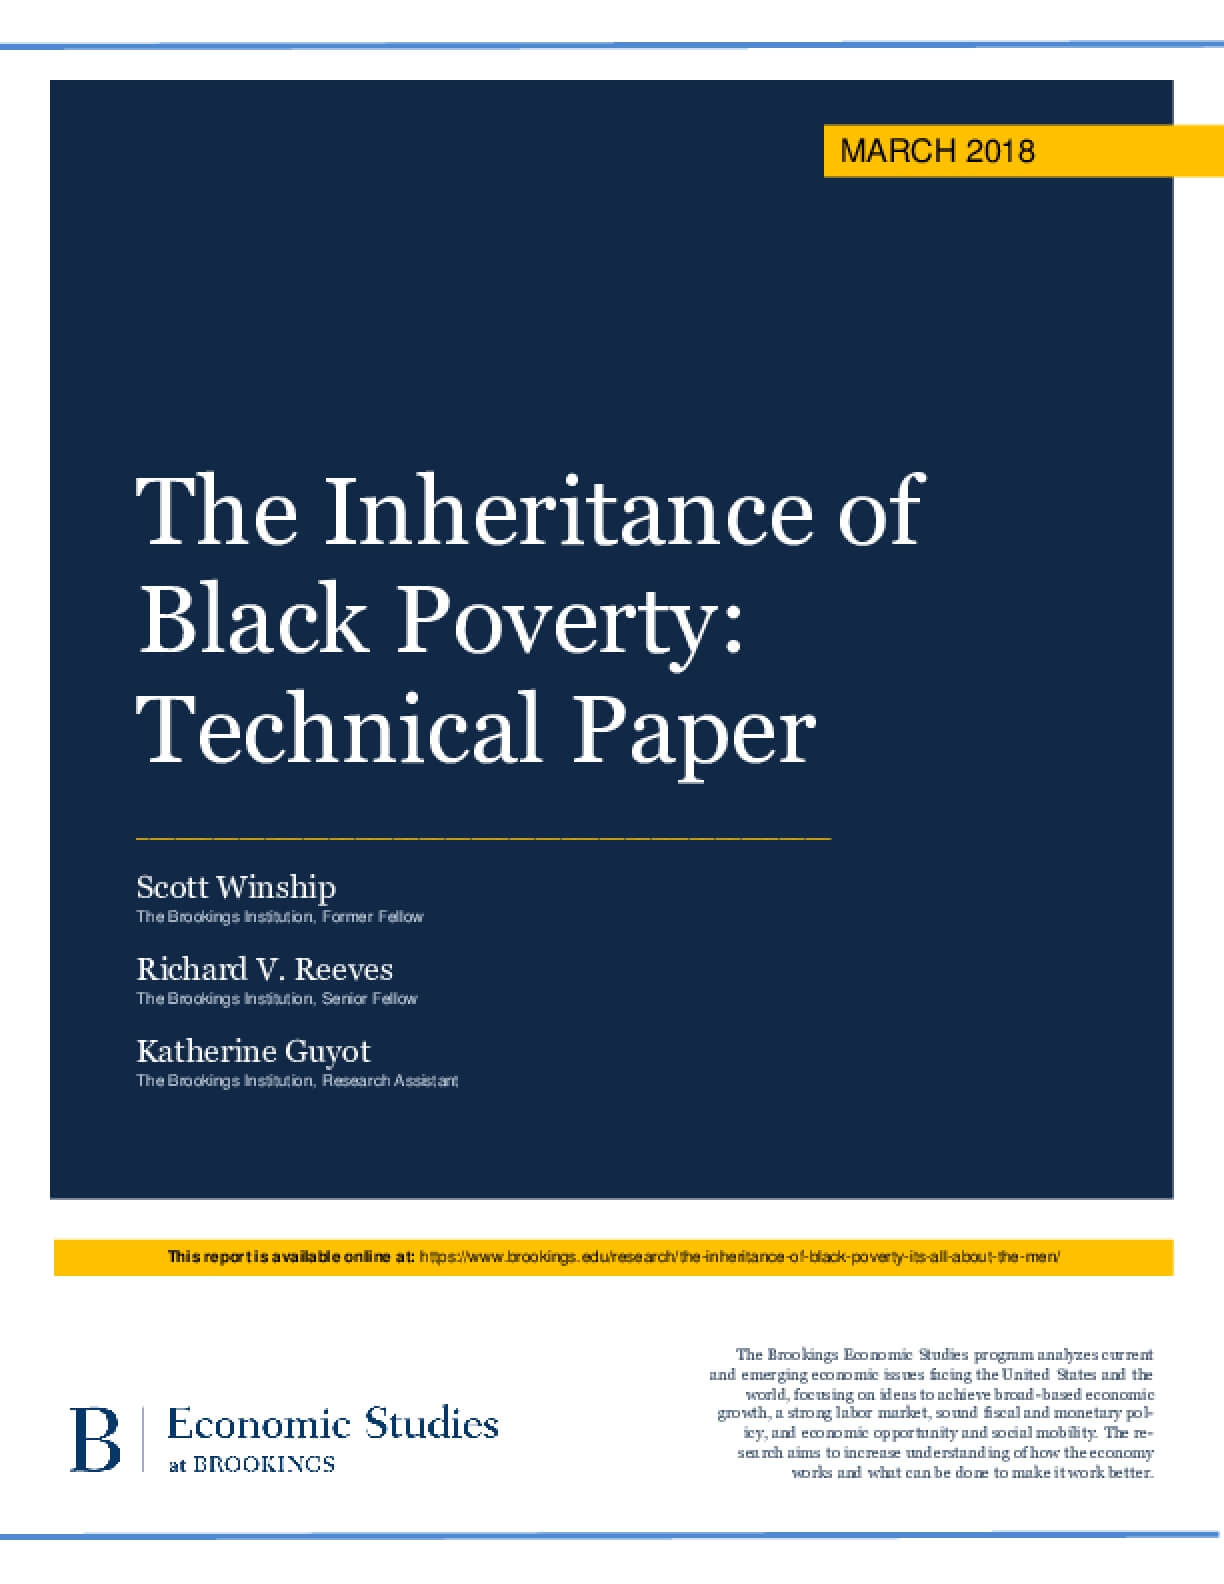 The Inheritance of Black Poverty: Technical Paper